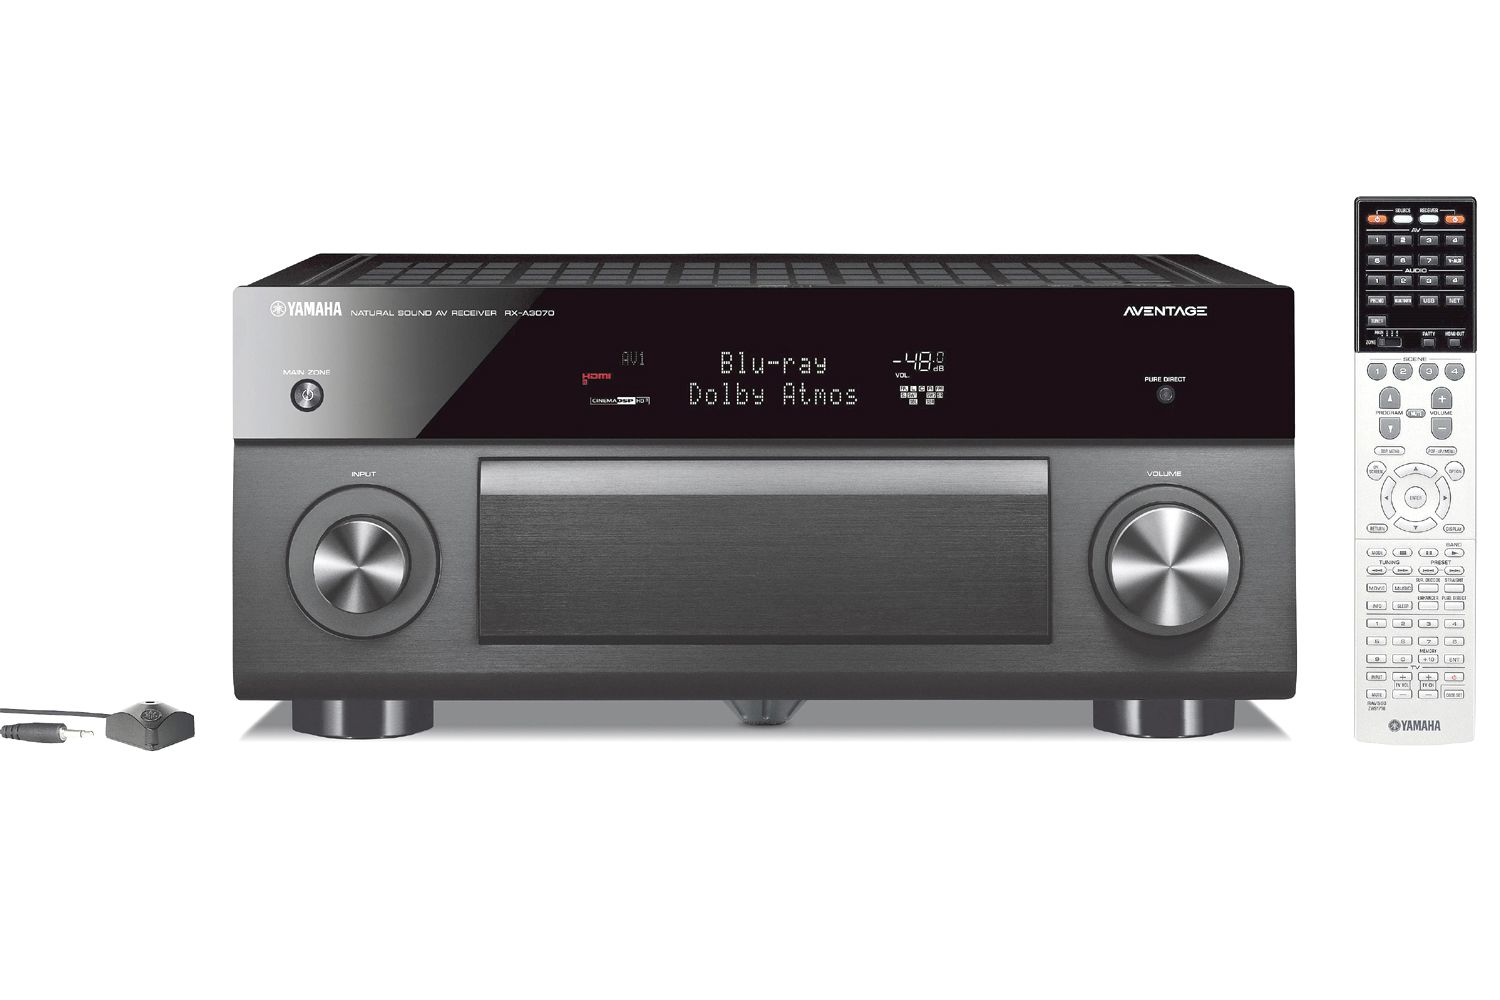 The 10 Best High End Home Theater Receivers To Buy In 2018 Audio Enhancement For Analog Amplifier Yamaha Aventage Rx A3070 Receiver